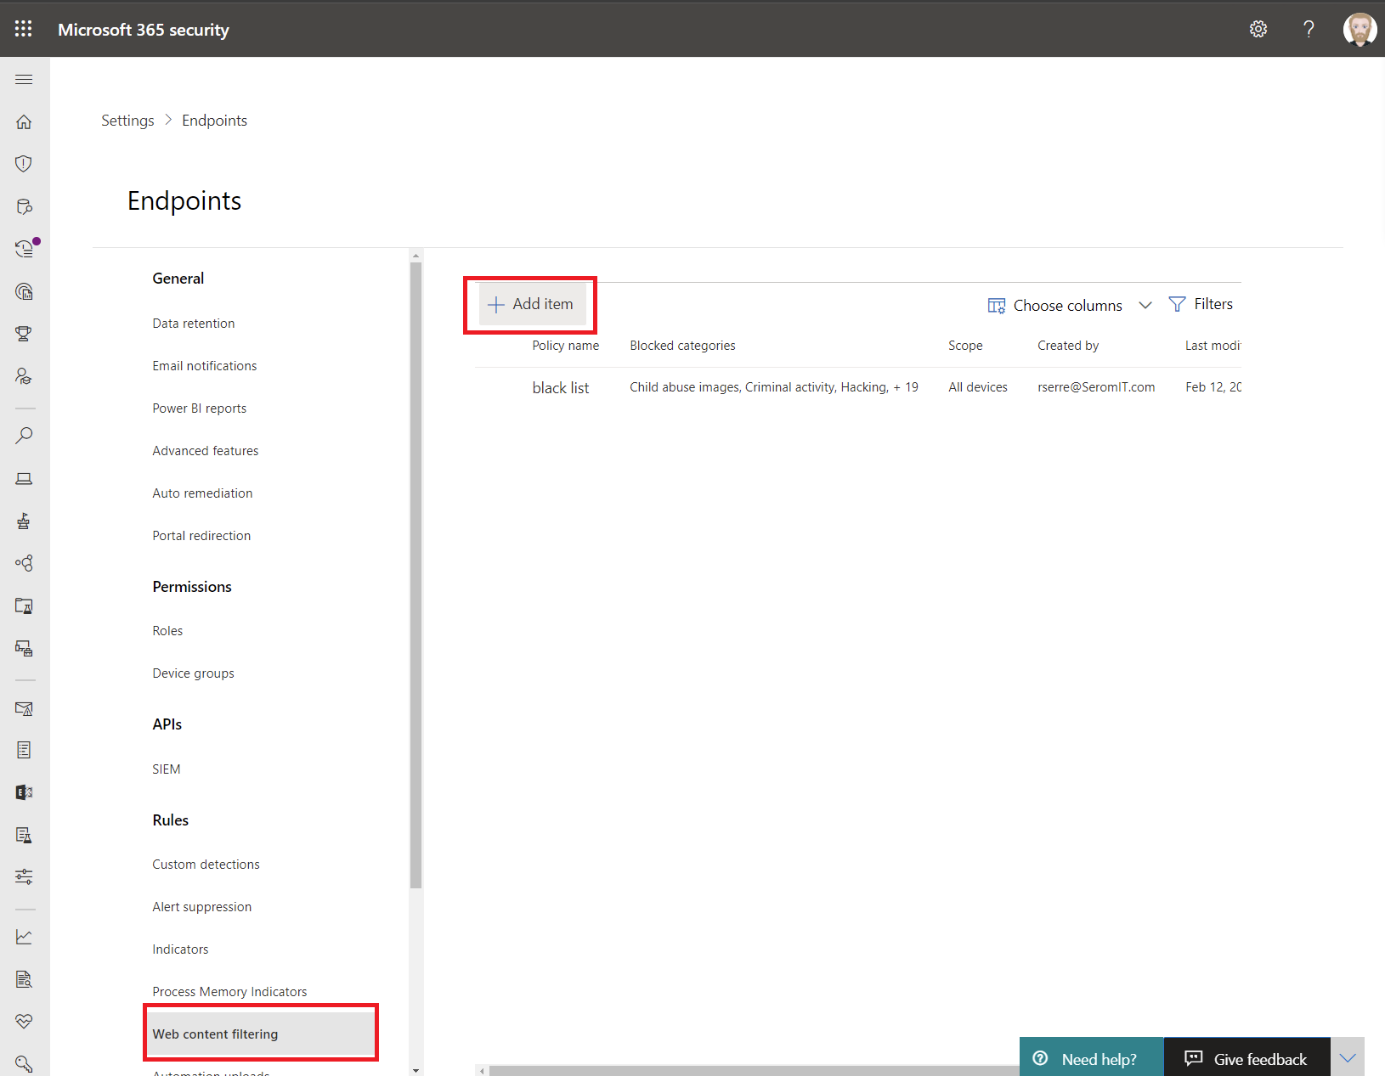 Microsoft 365 Security - Web Content Filtering